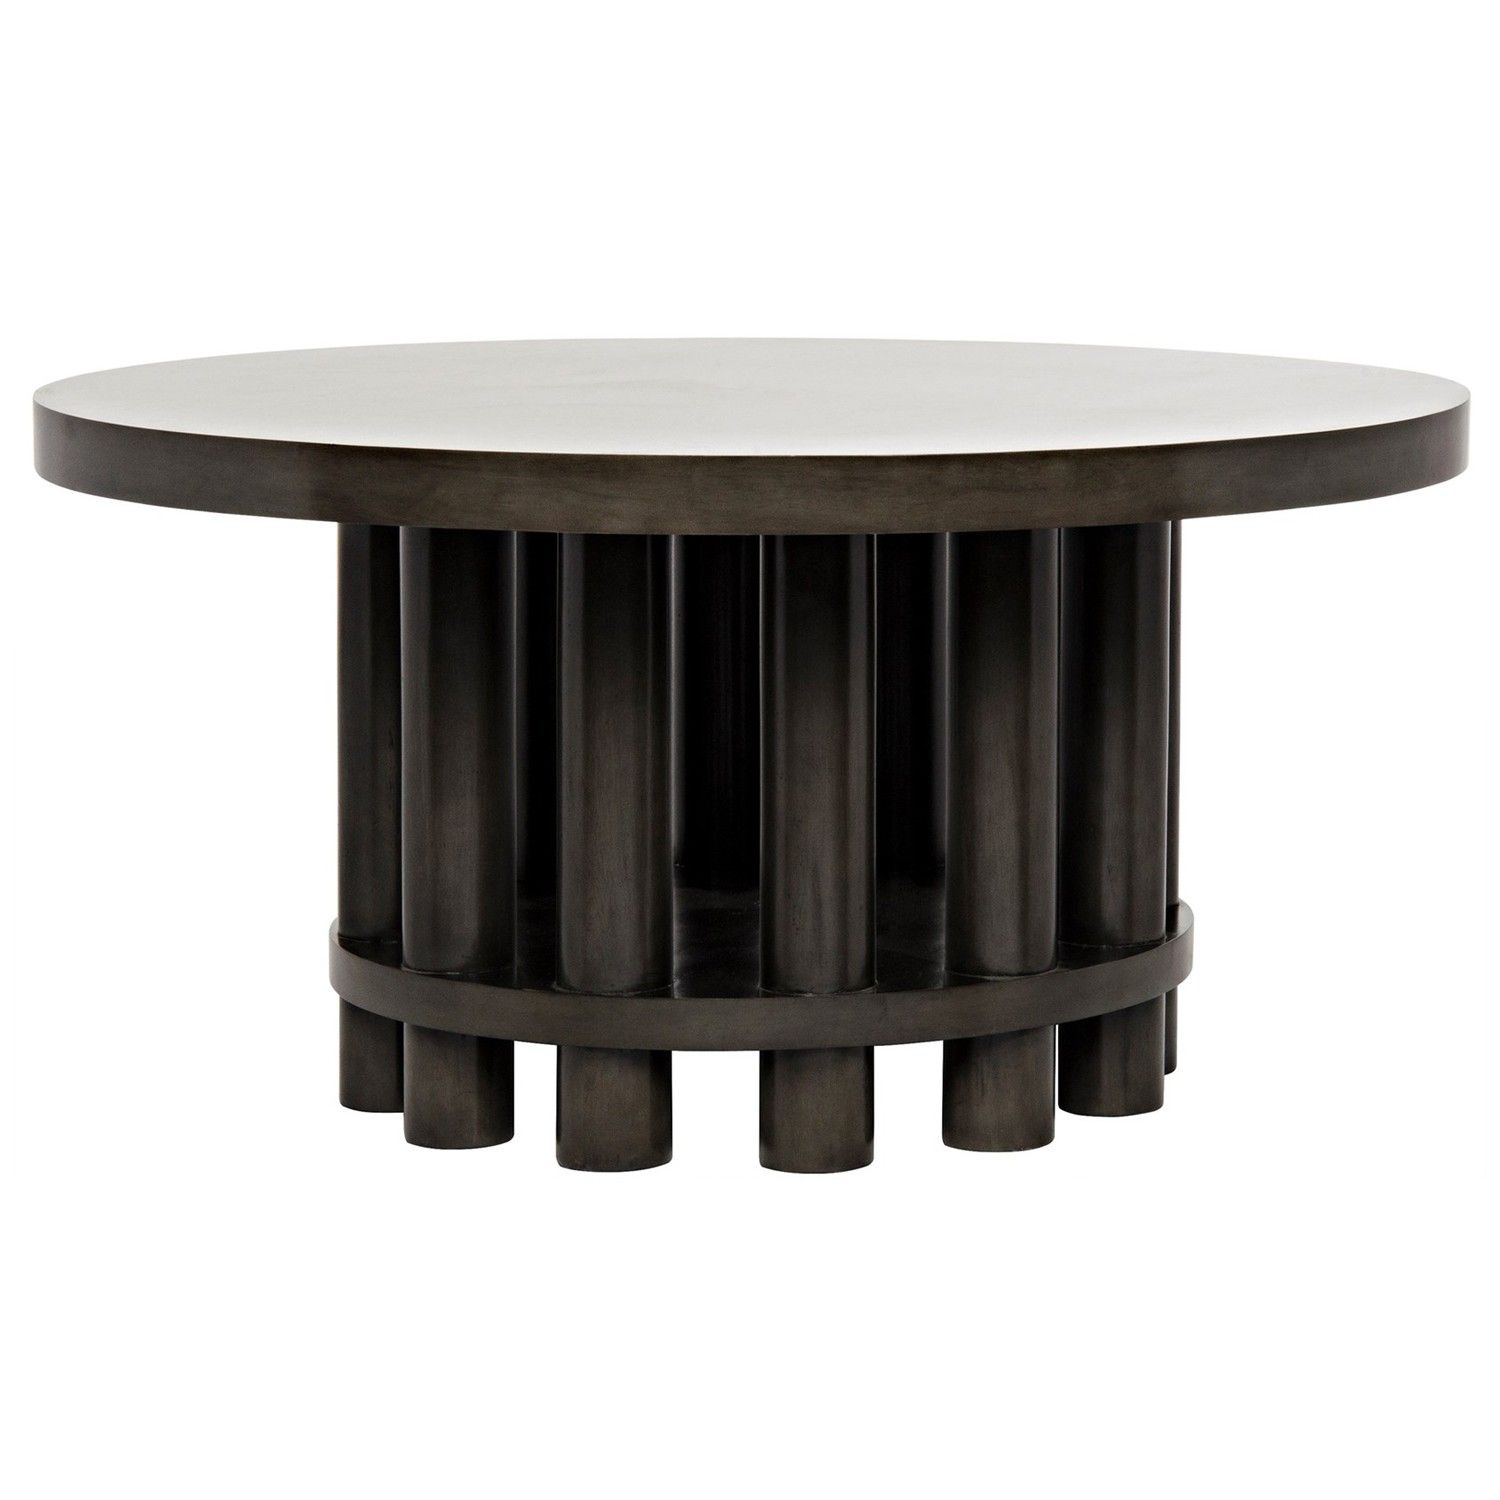 The Hiro Dining Table By Noir Emphasizes Natural Simple And